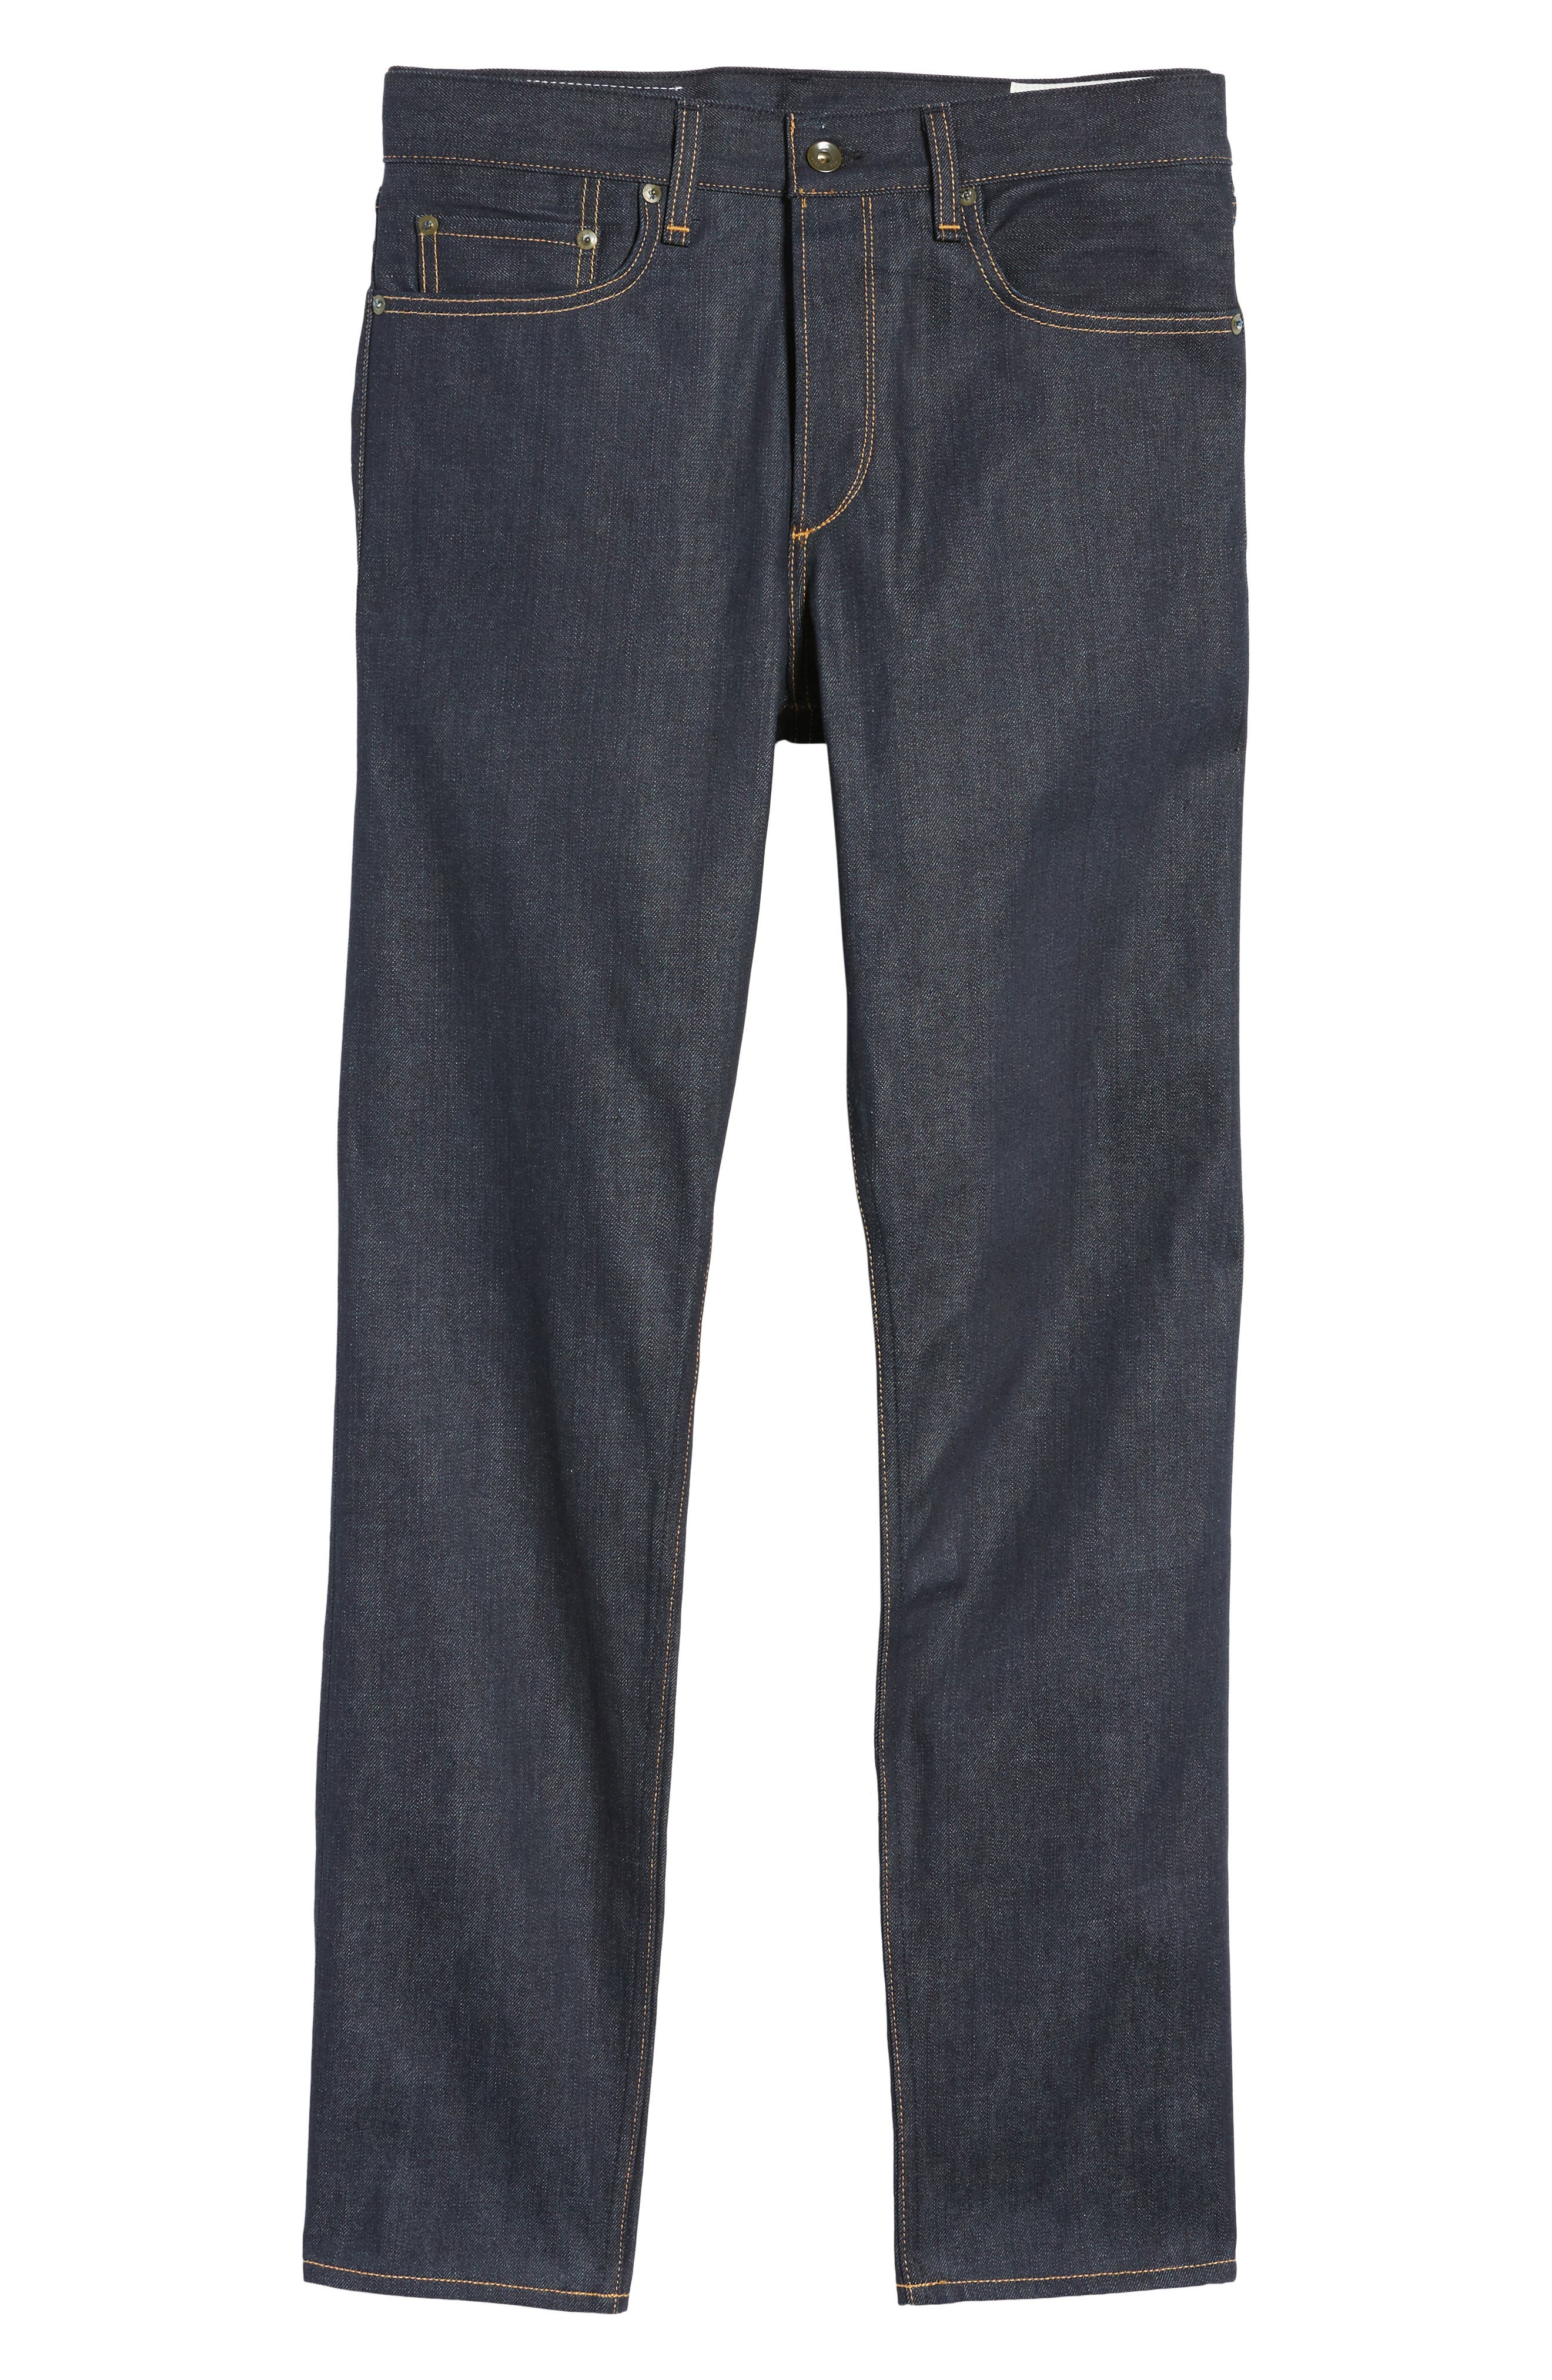 Standard Issue Fit 2 Slim Fit Raw Selvedge Jeans,                         Main,                         color, INDIGO